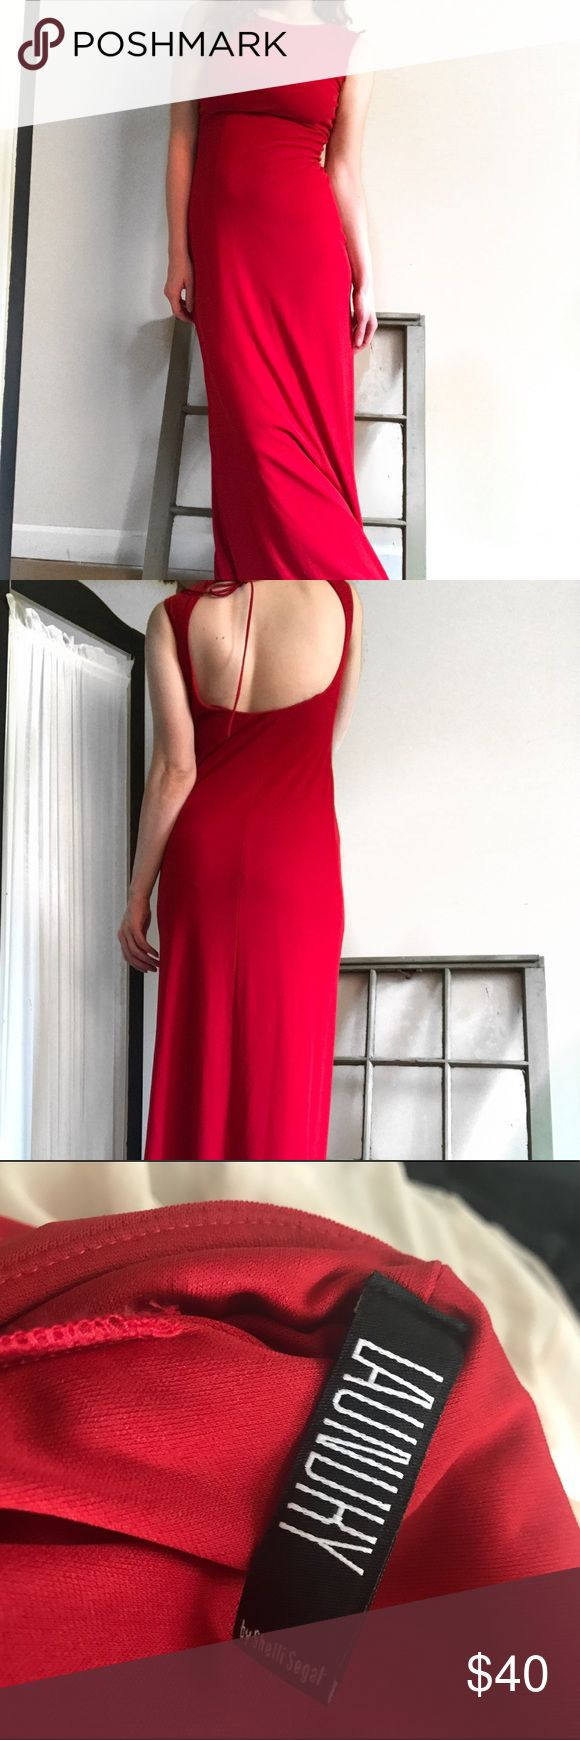 Floor Length 90s Red Dress by Laundry Shelli Segal Xmas sale! Markdowns from now until 12/19. High neck, open back. This ties at the neck, for a very flattering look. This dress is absolutely stunning. #reddress #ladyinred #maxidress #designerdress Laundry By Shelli Segal Dresses Maxi